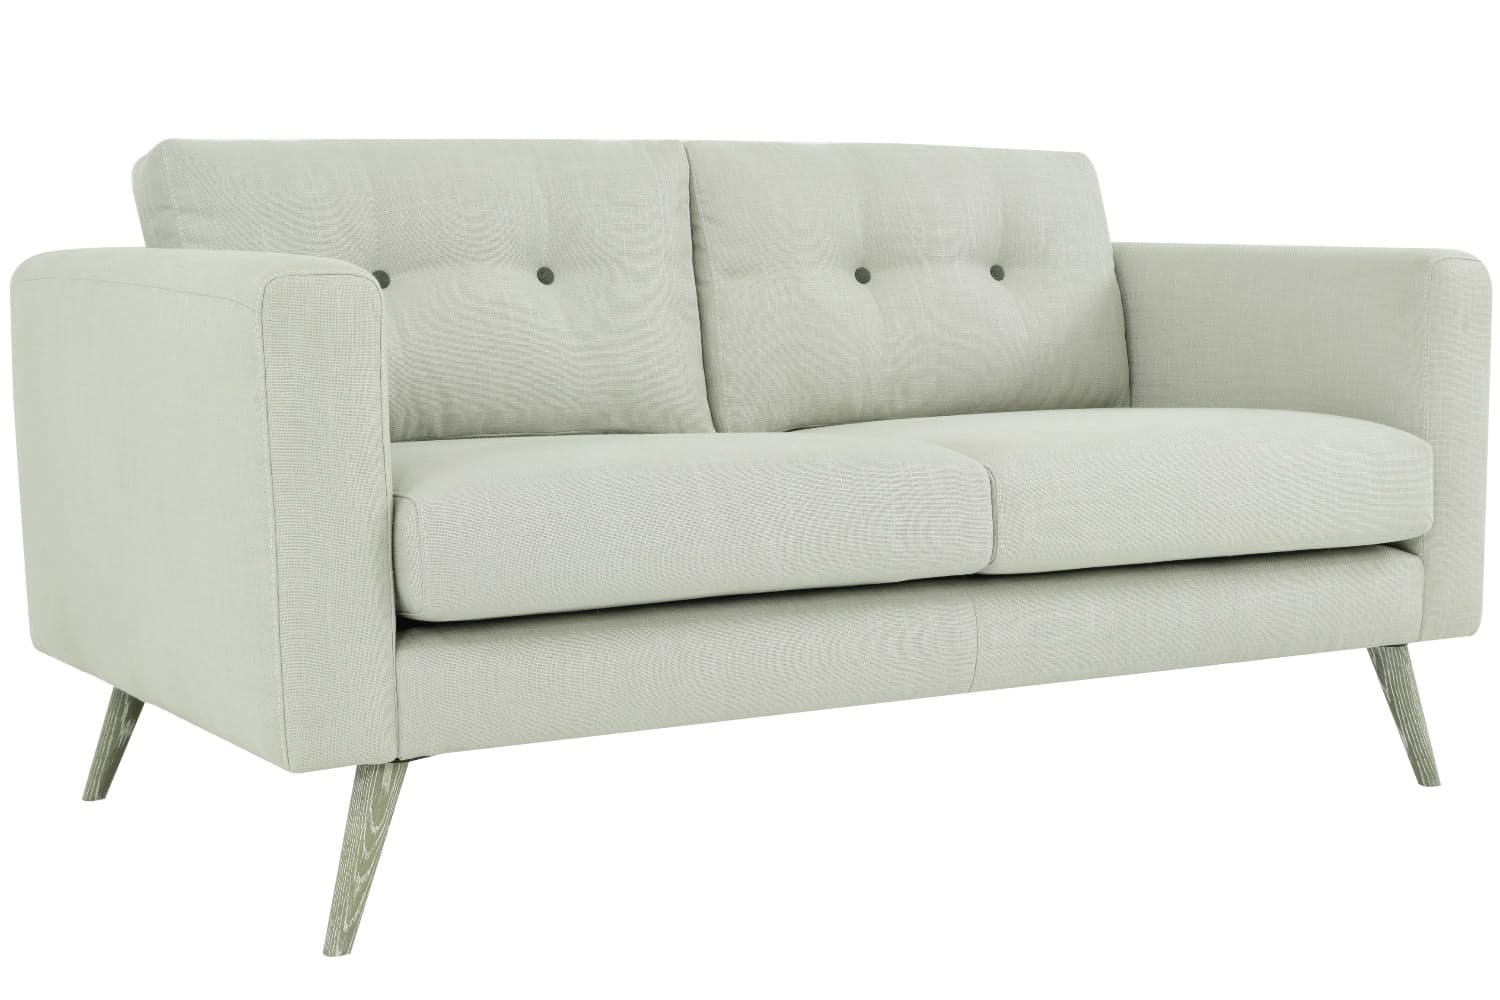 Fable 2 Seater Sofa